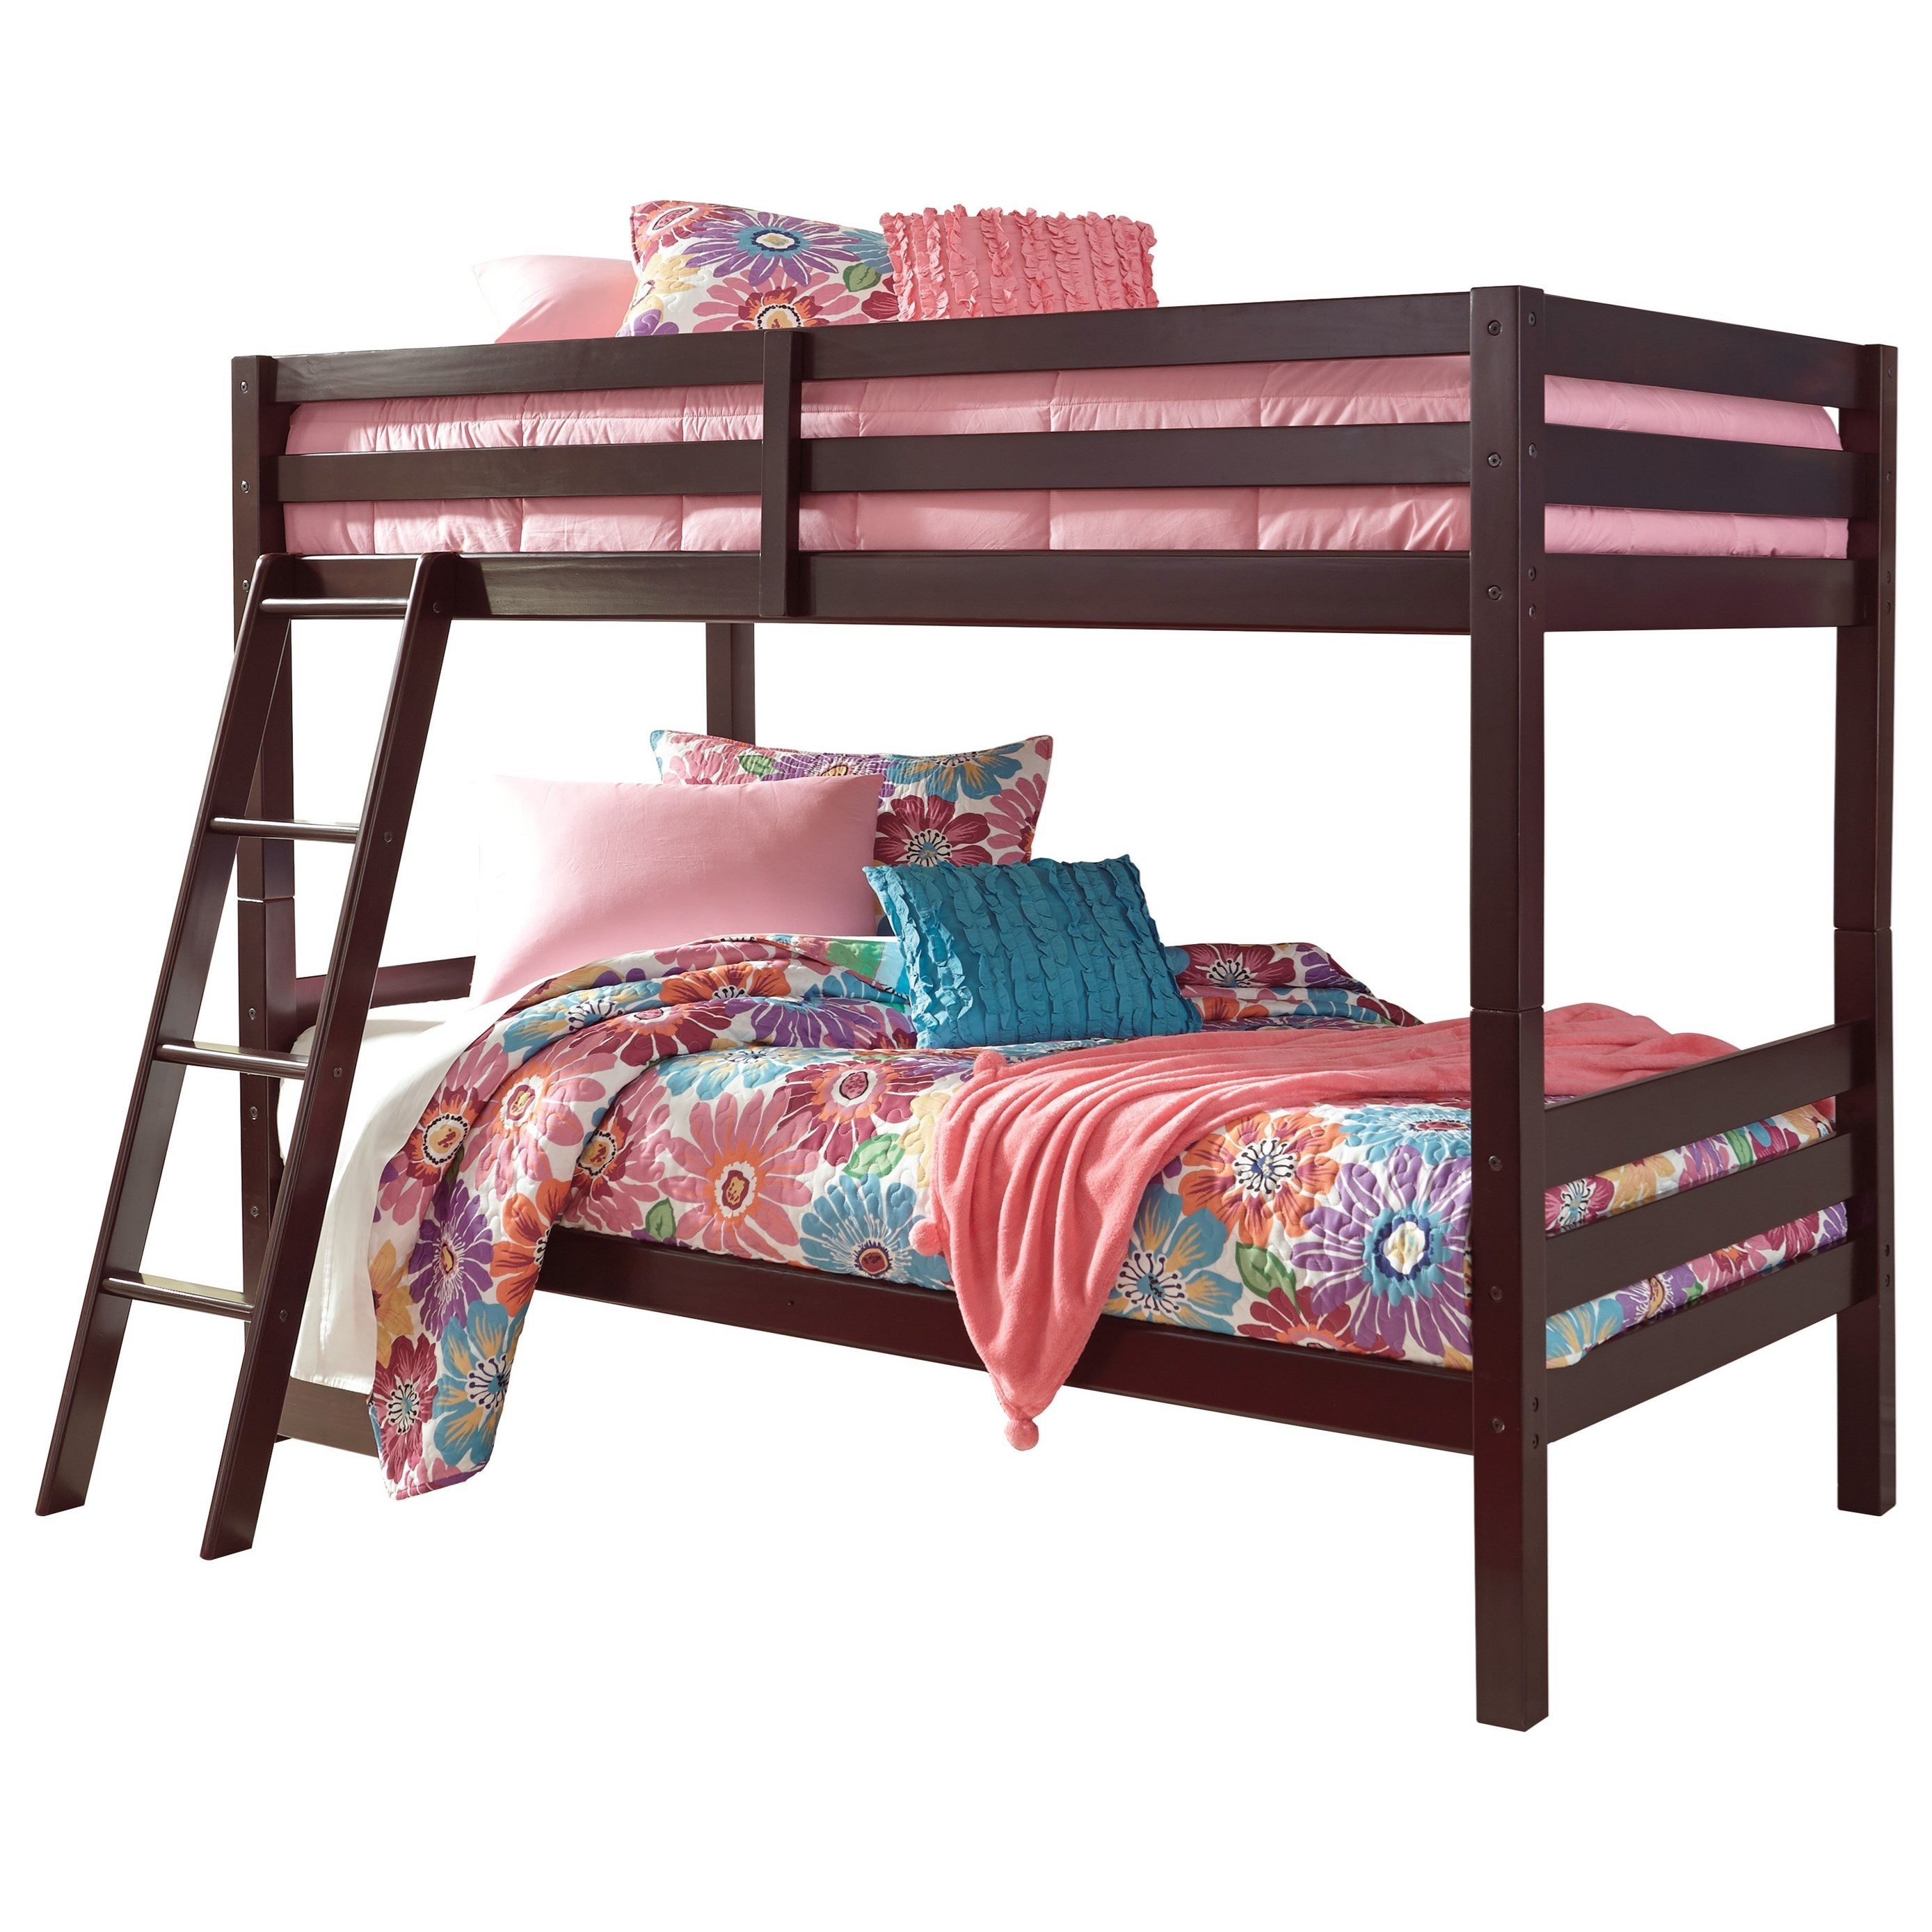 Halanton Twin/Twin Bunk Bed by Signature Design by Ashley at HomeWorld Furniture